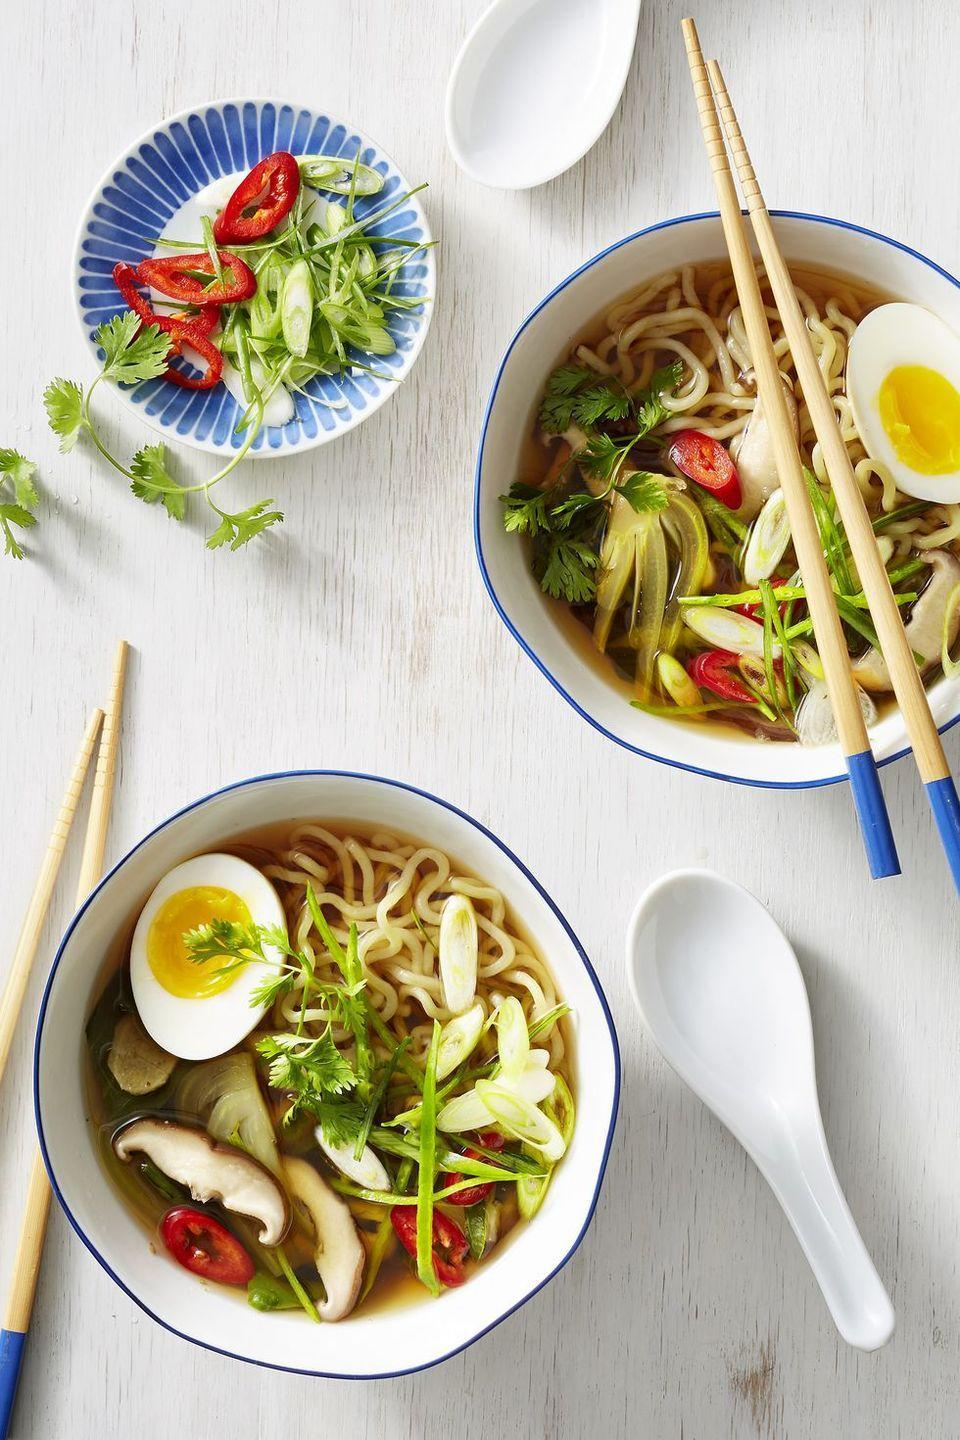 """<p>Dressing up your favorite ramen noodles is easy when you double down on fresh mushrooms and bok choy.</p><p><a href=""""https://www.goodhousekeeping.com/food-recipes/easy/a22729685/vegetable-ramen-with-mushrooms-and-bok-choy-recipe/"""" rel=""""nofollow noopener"""" target=""""_blank"""" data-ylk=""""slk:Get the recipe for Vegetable Ramen With Mushrooms and Bok Choy »"""" class=""""link rapid-noclick-resp""""><em>Get the recipe for Vegetable Ramen With Mushrooms and Bok Choy »</em></a><br></p>"""